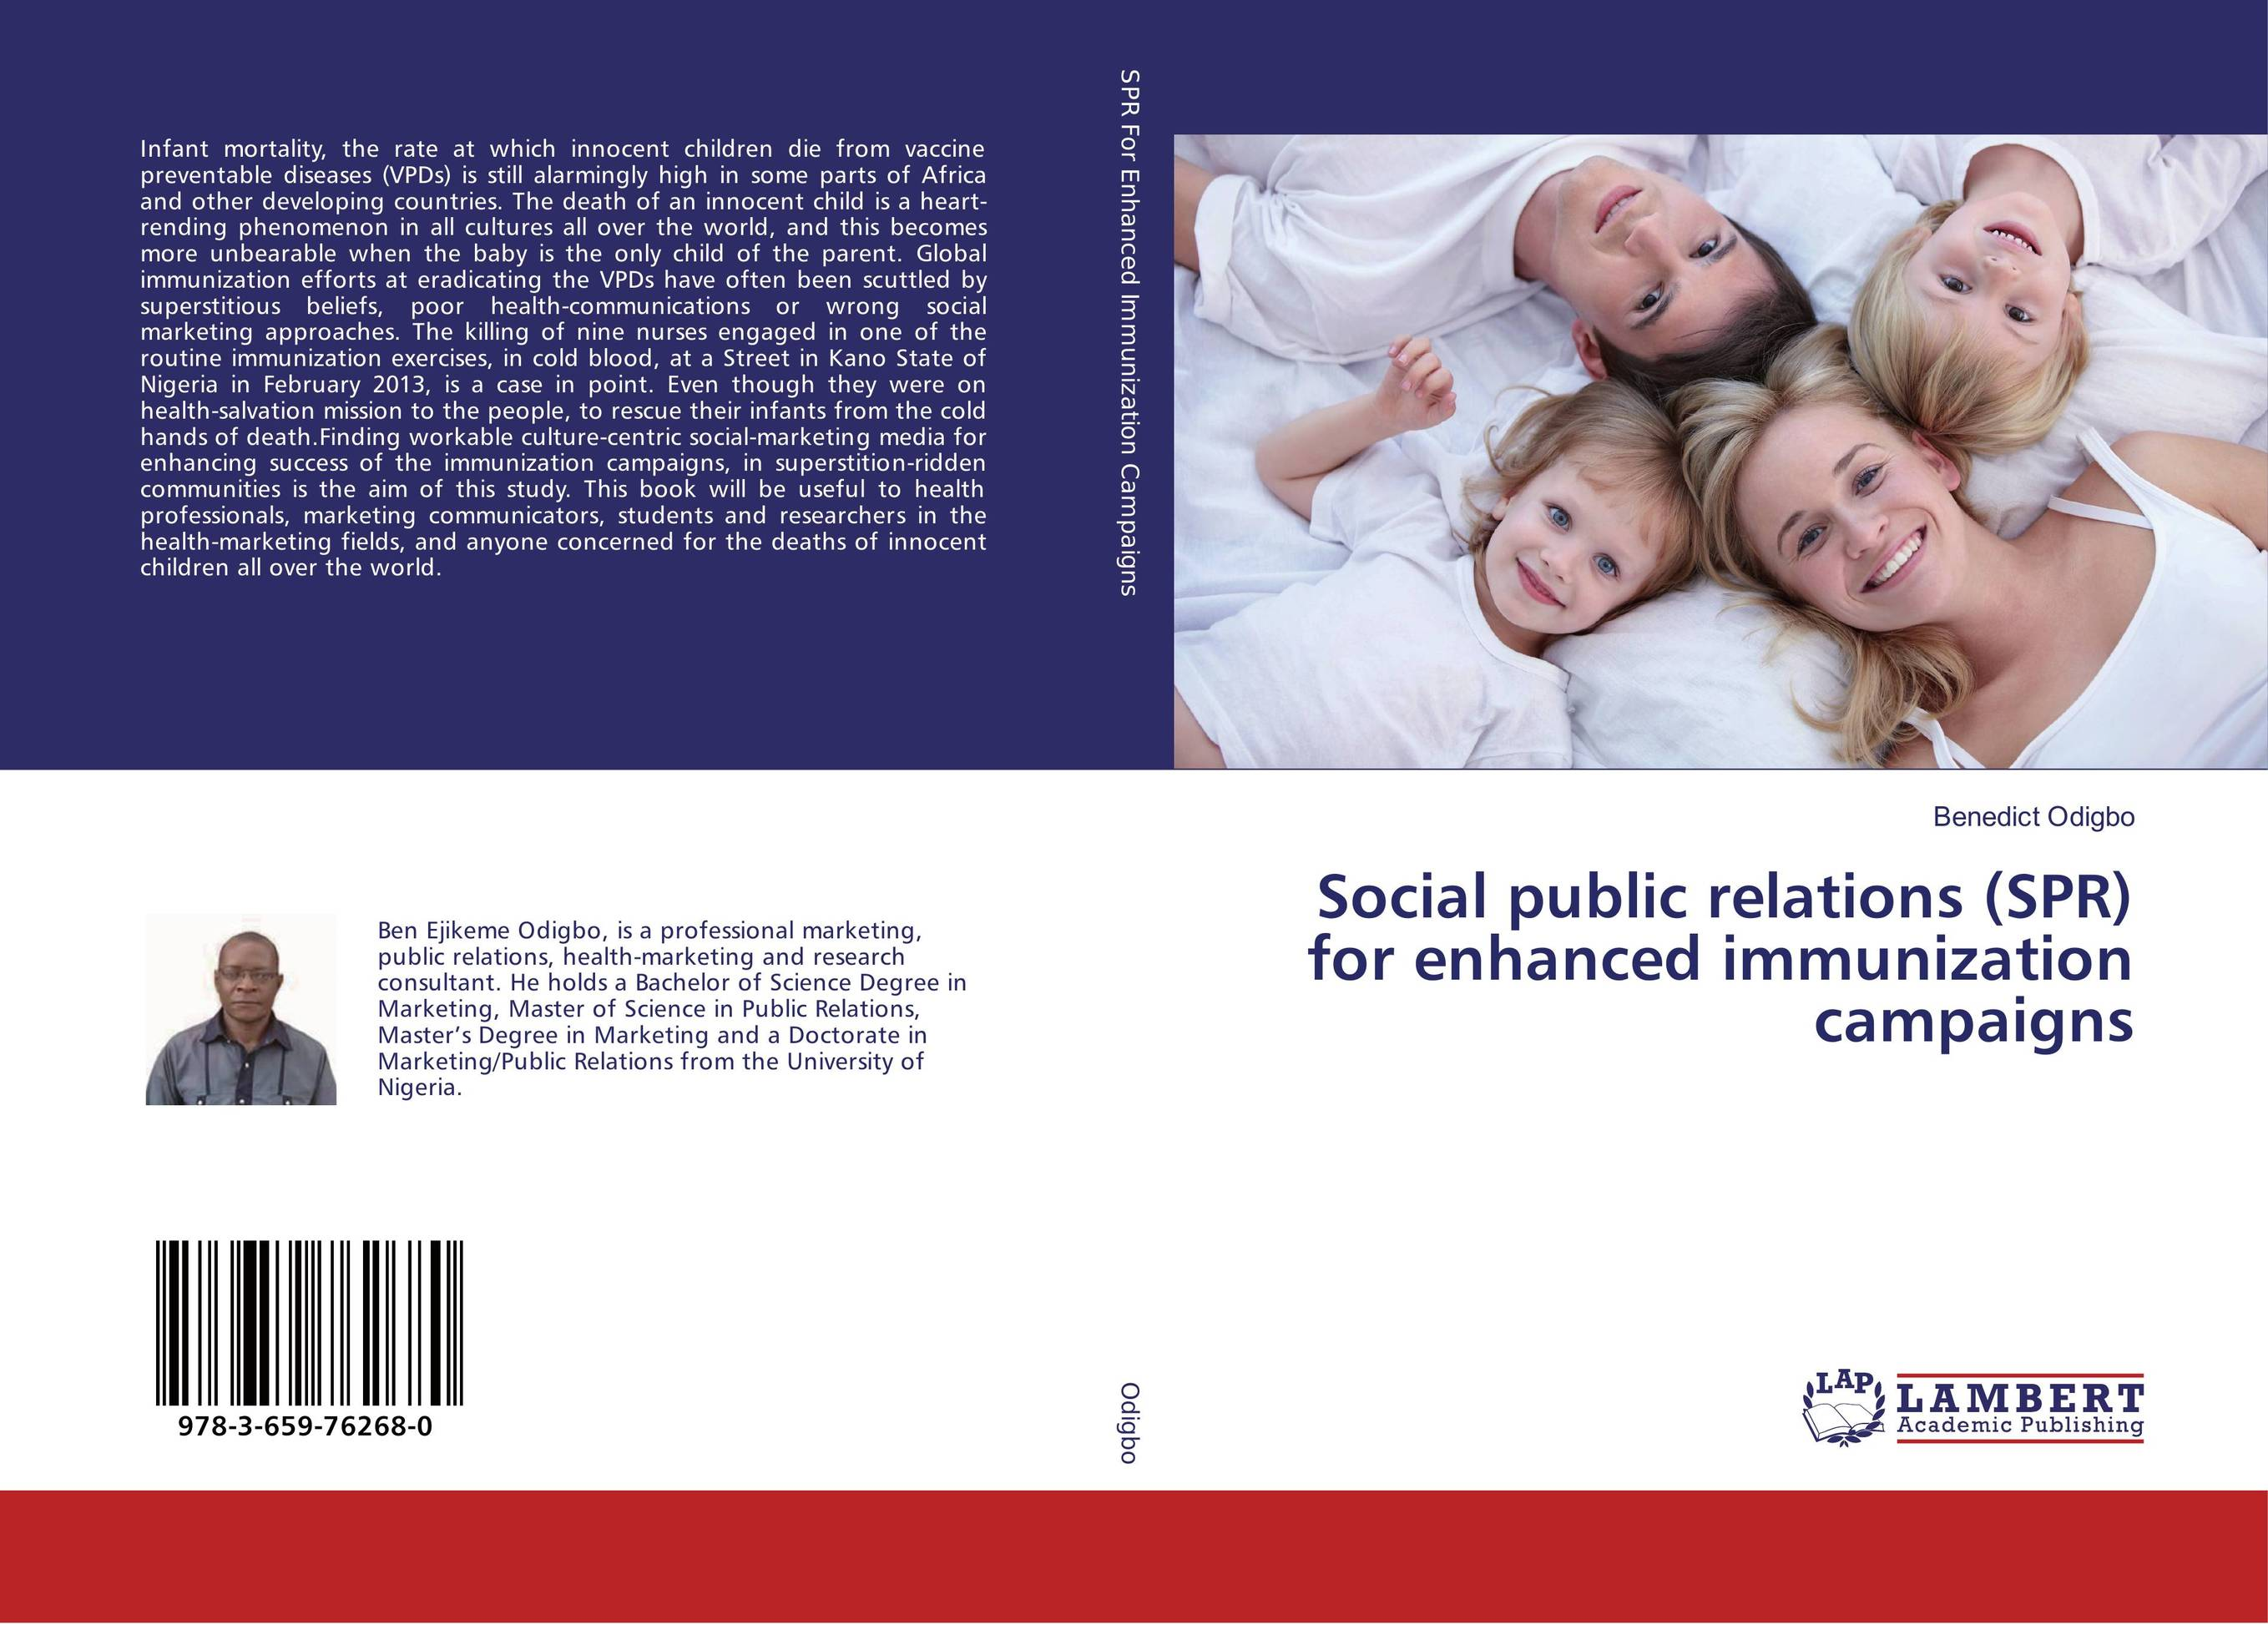 Social public relations (SPR) for enhanced immunization campaigns